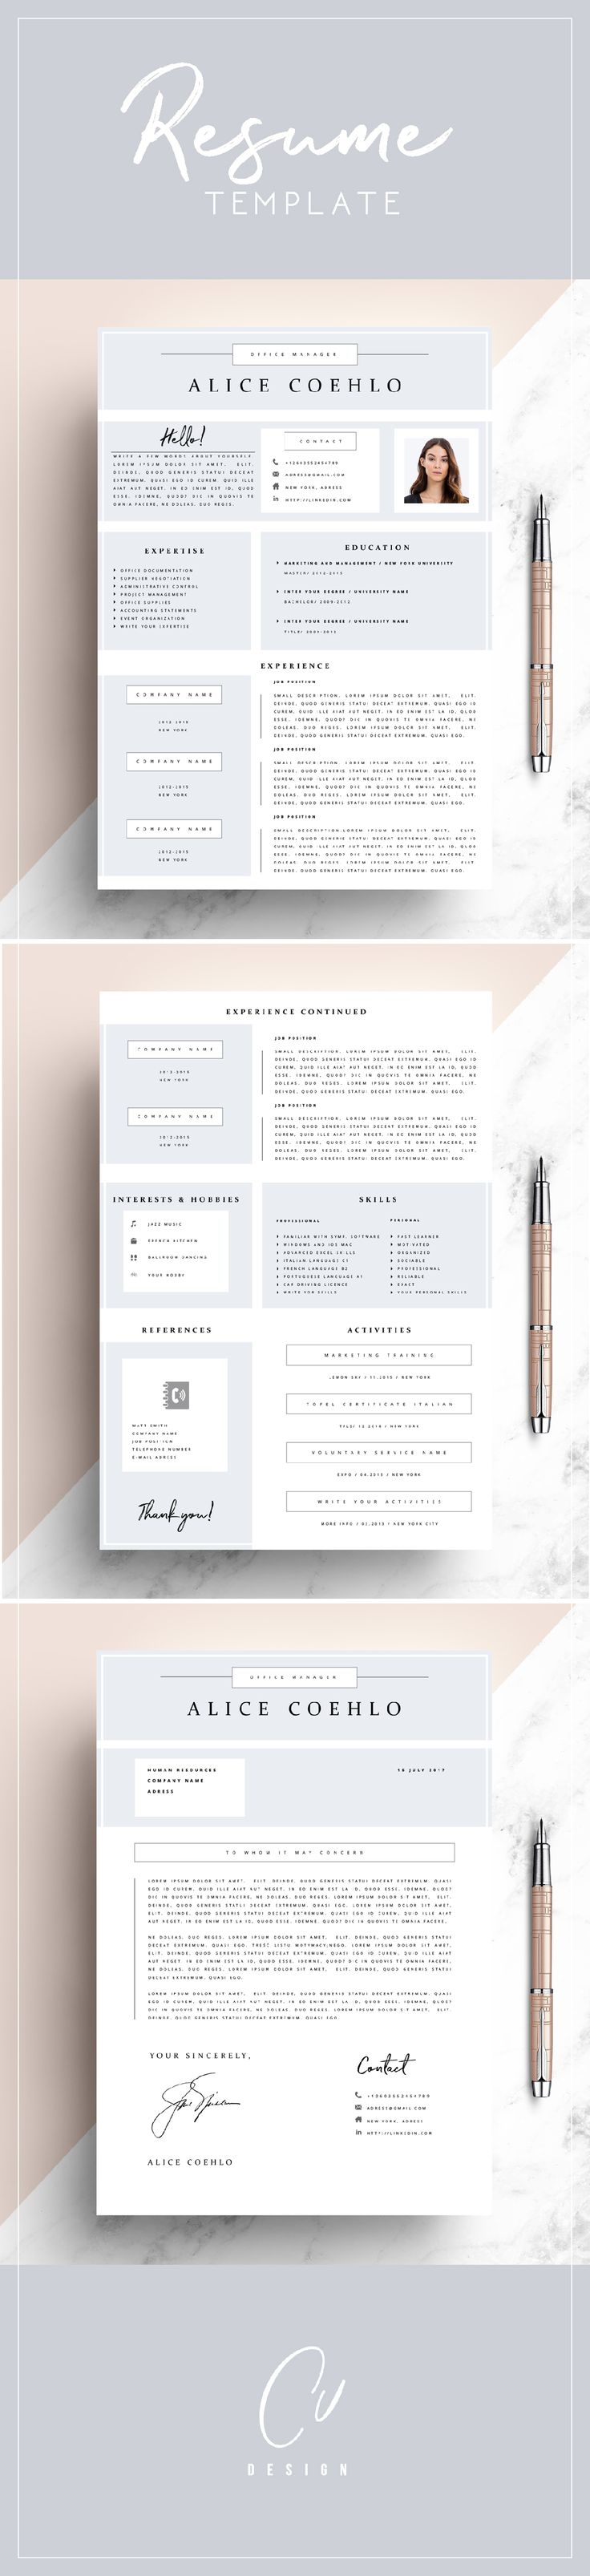 check out this amazing ms word editable resume template